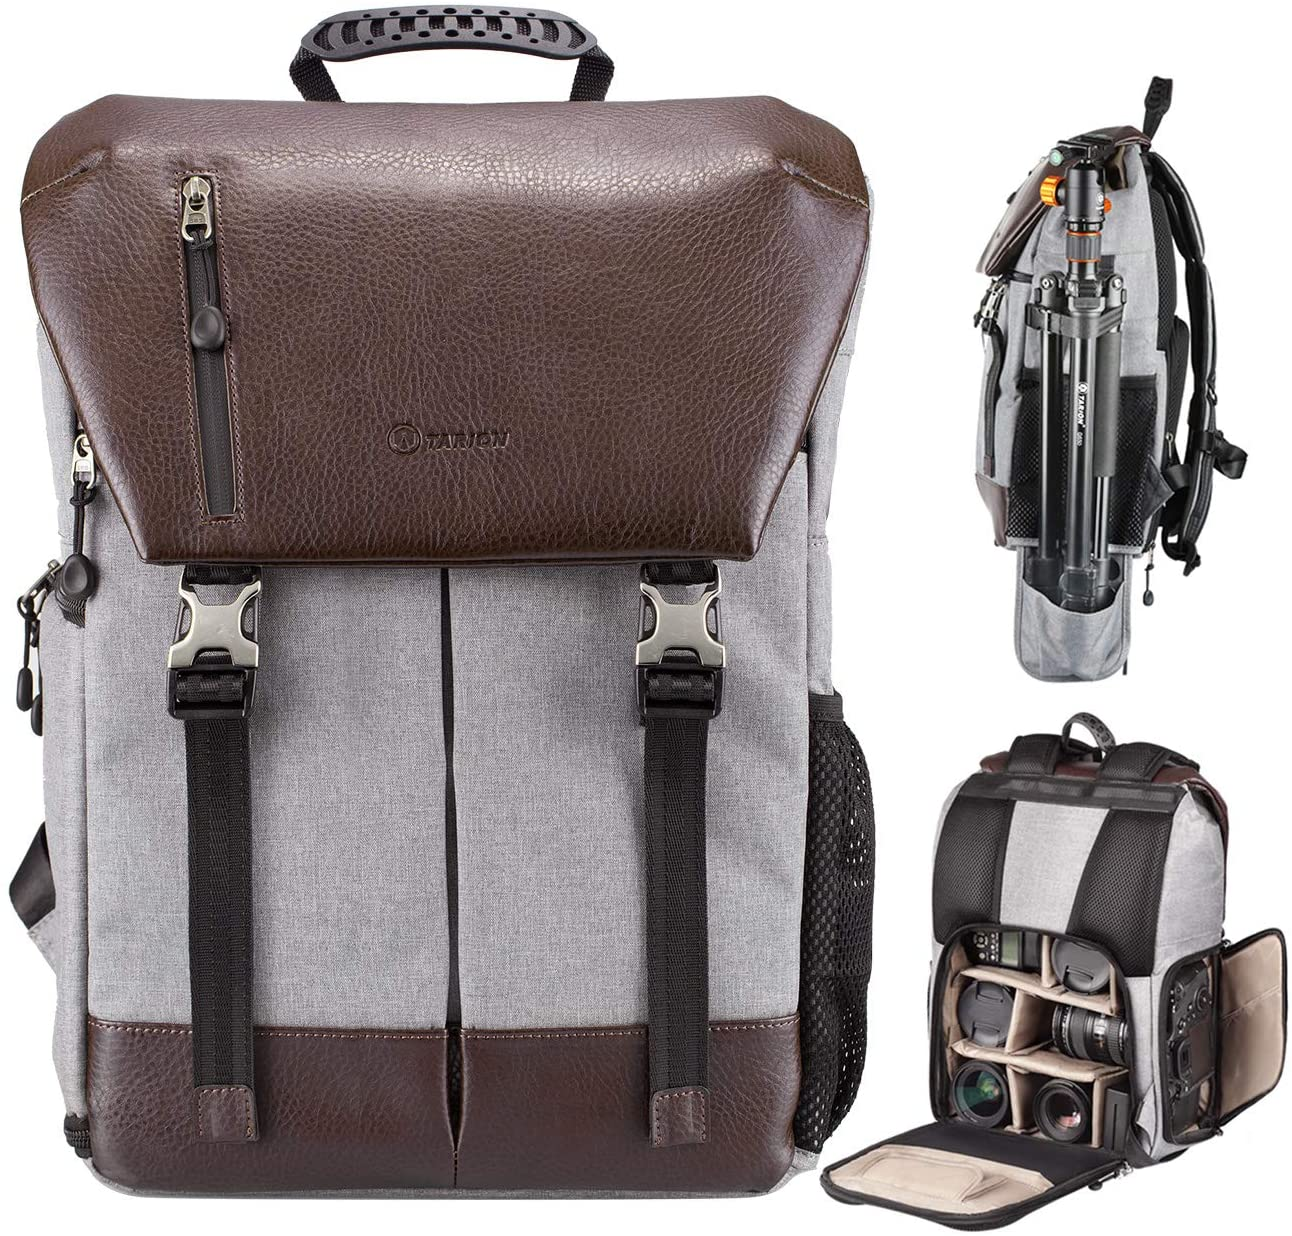 Tarion Leather Camera Bag